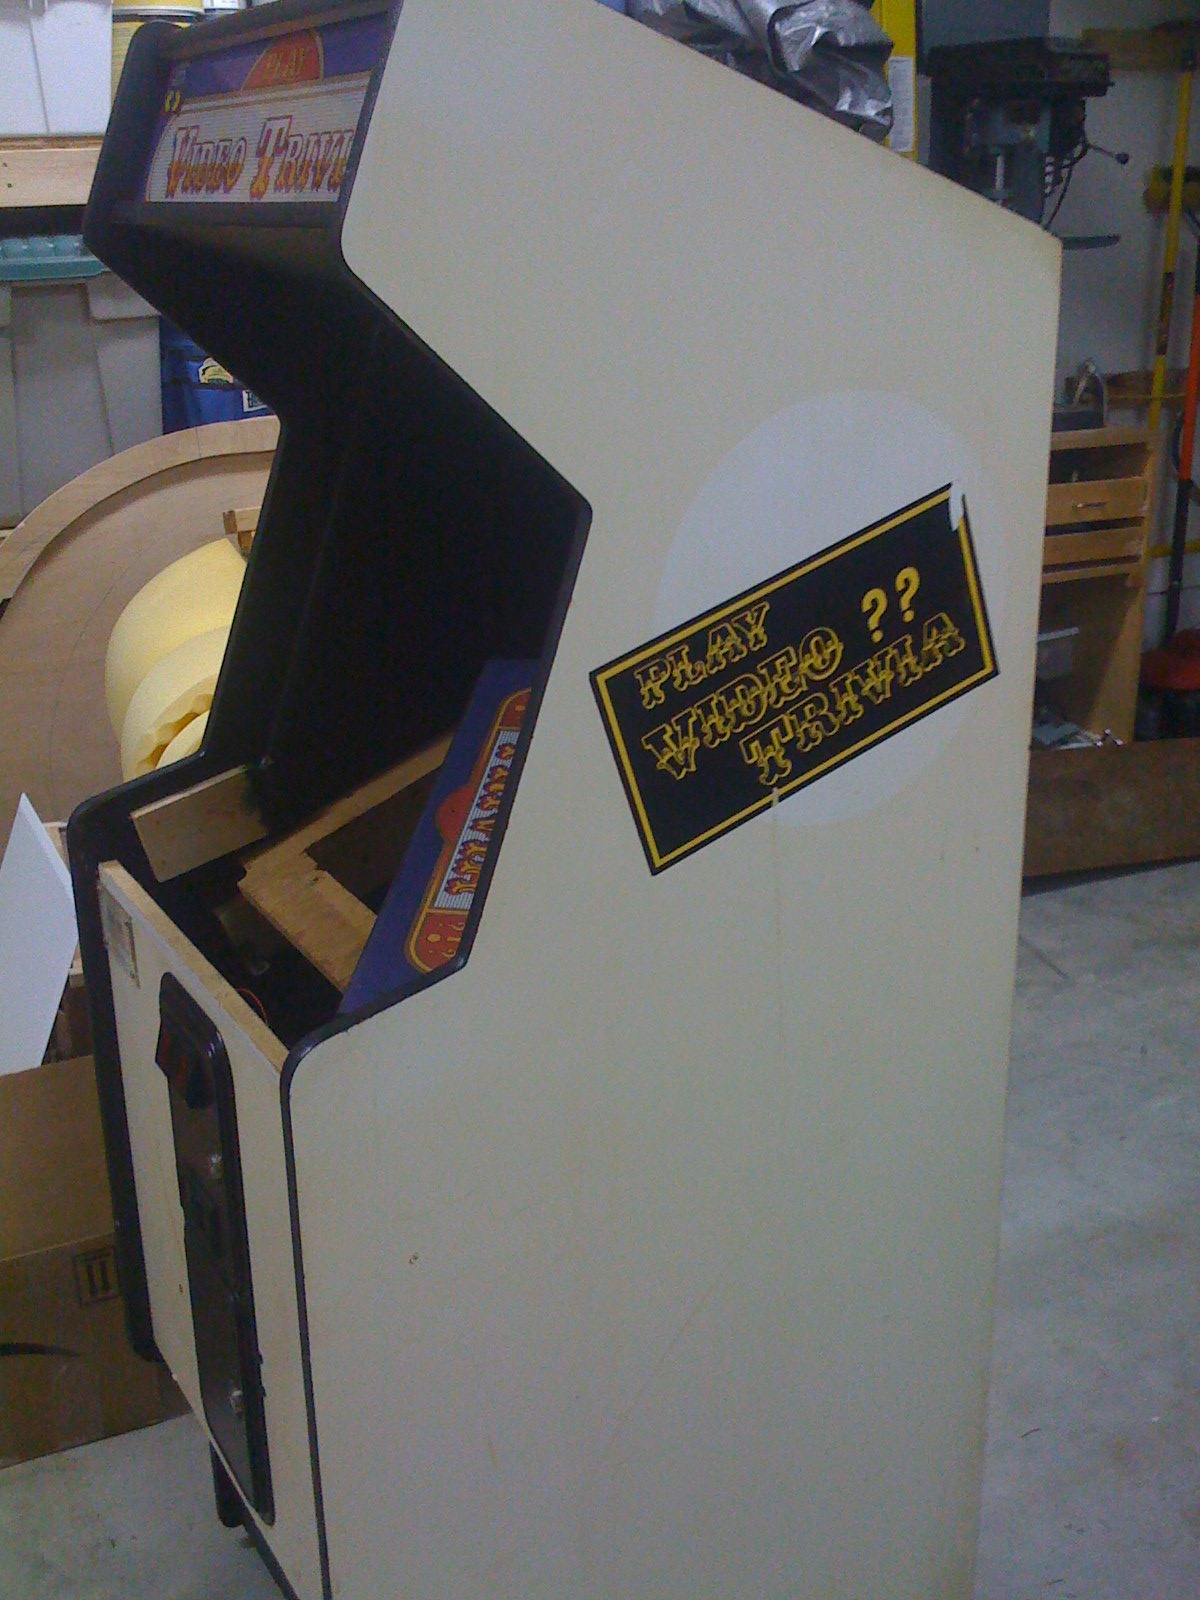 Building your own Arcade Cabinet for Geeks - Part 1 - The